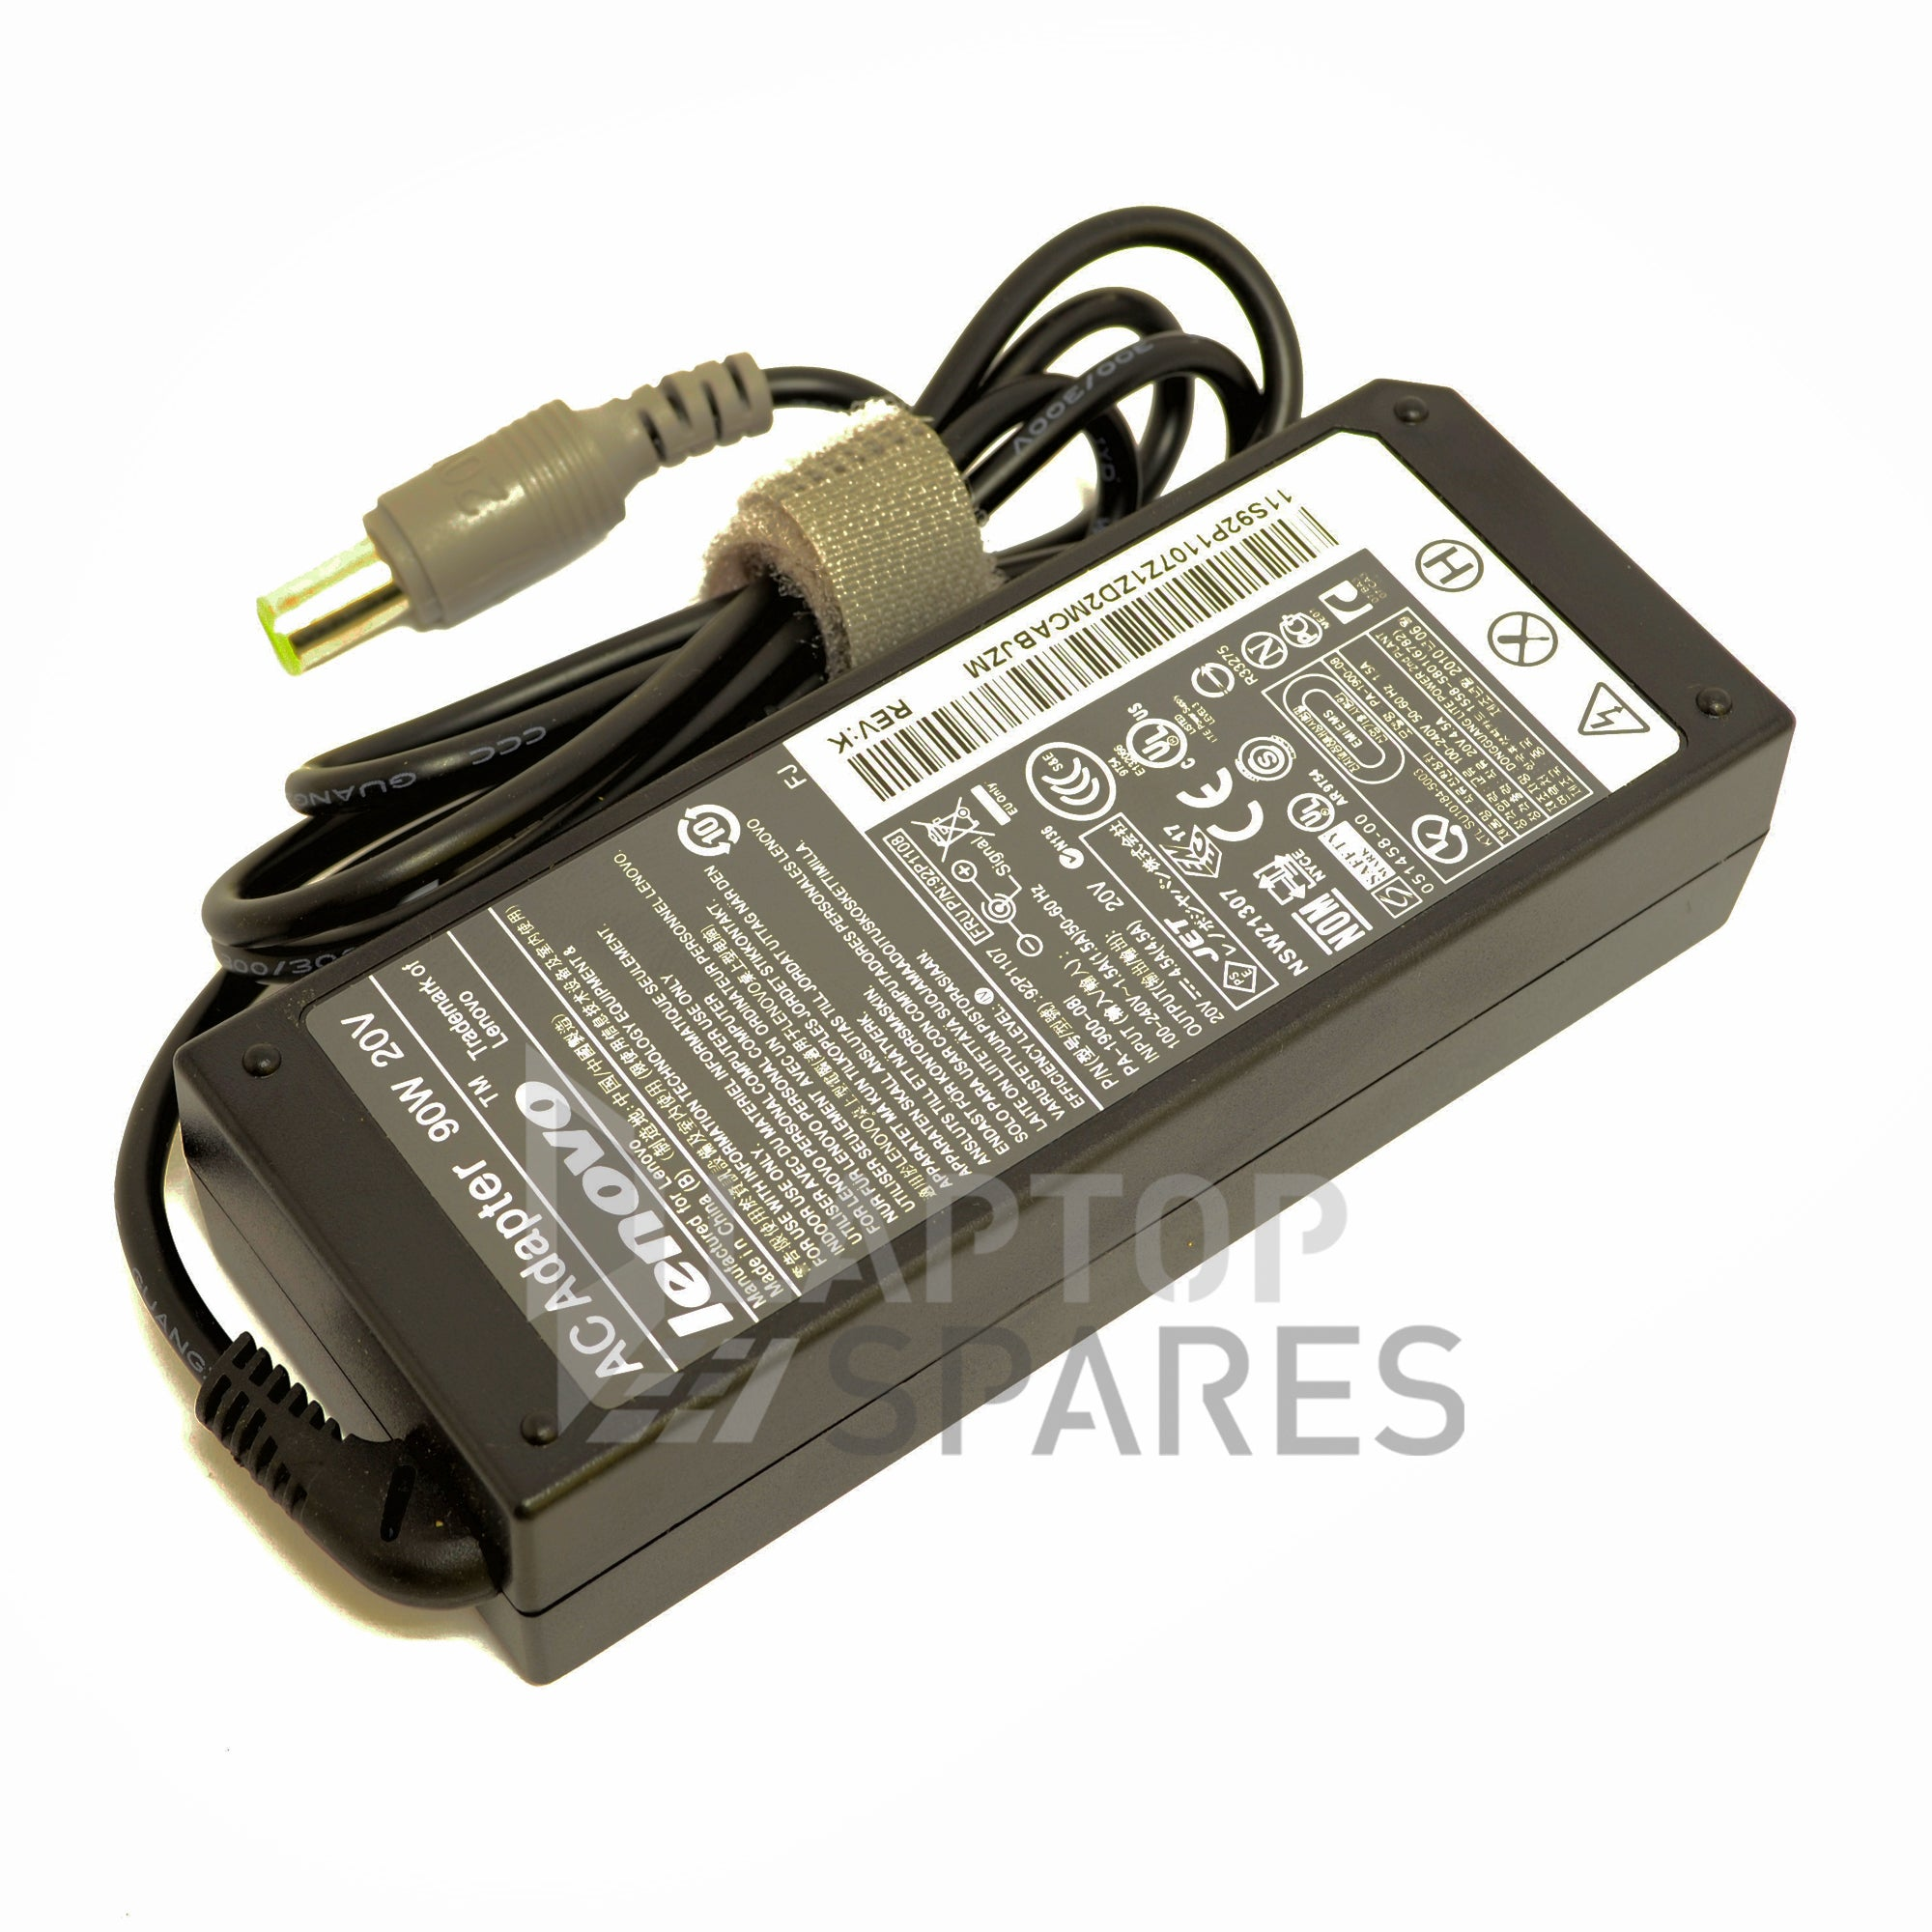 Lenovo 3000 C100 Laptop AC Adapter Charger